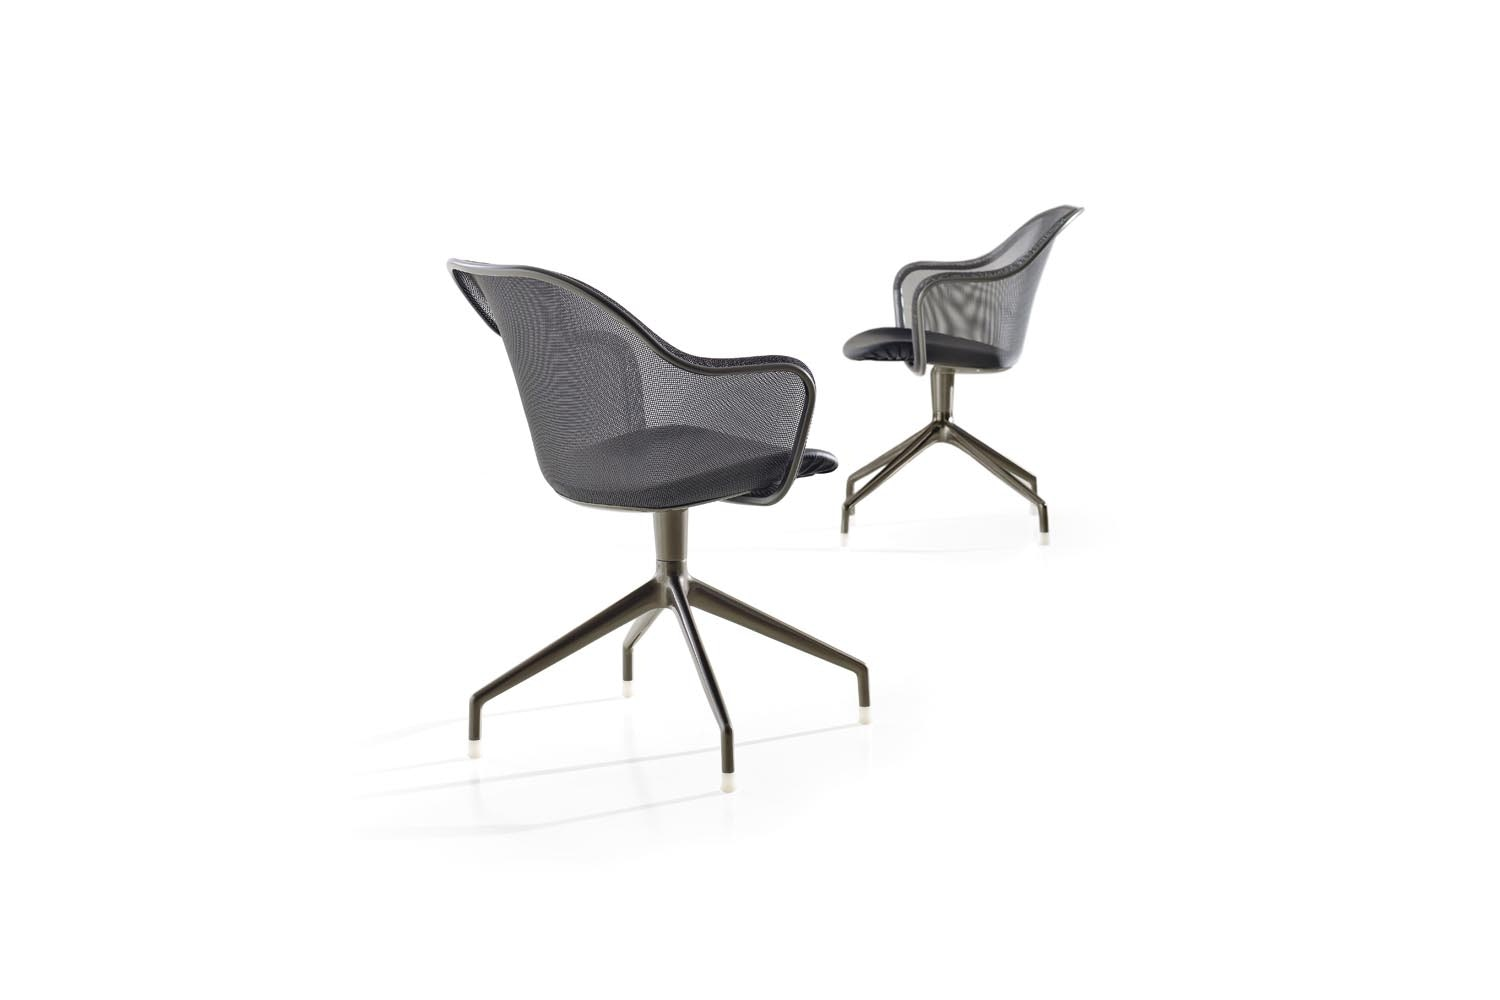 Iuta 2012 Chair with Arms by Antonio Citterio for B&B Italia